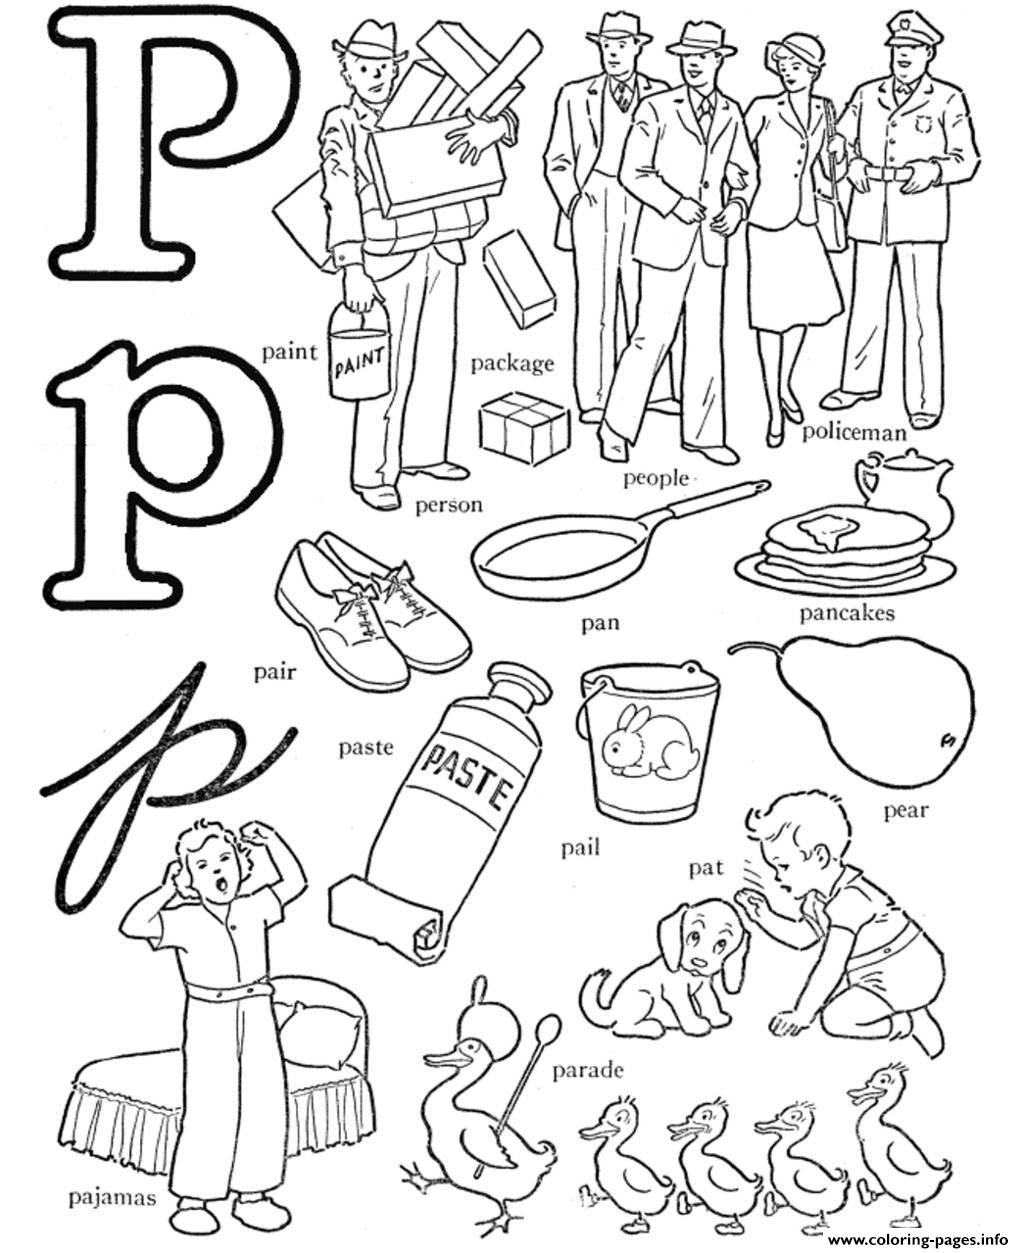 P words free alphabet s6040 coloring pages printable